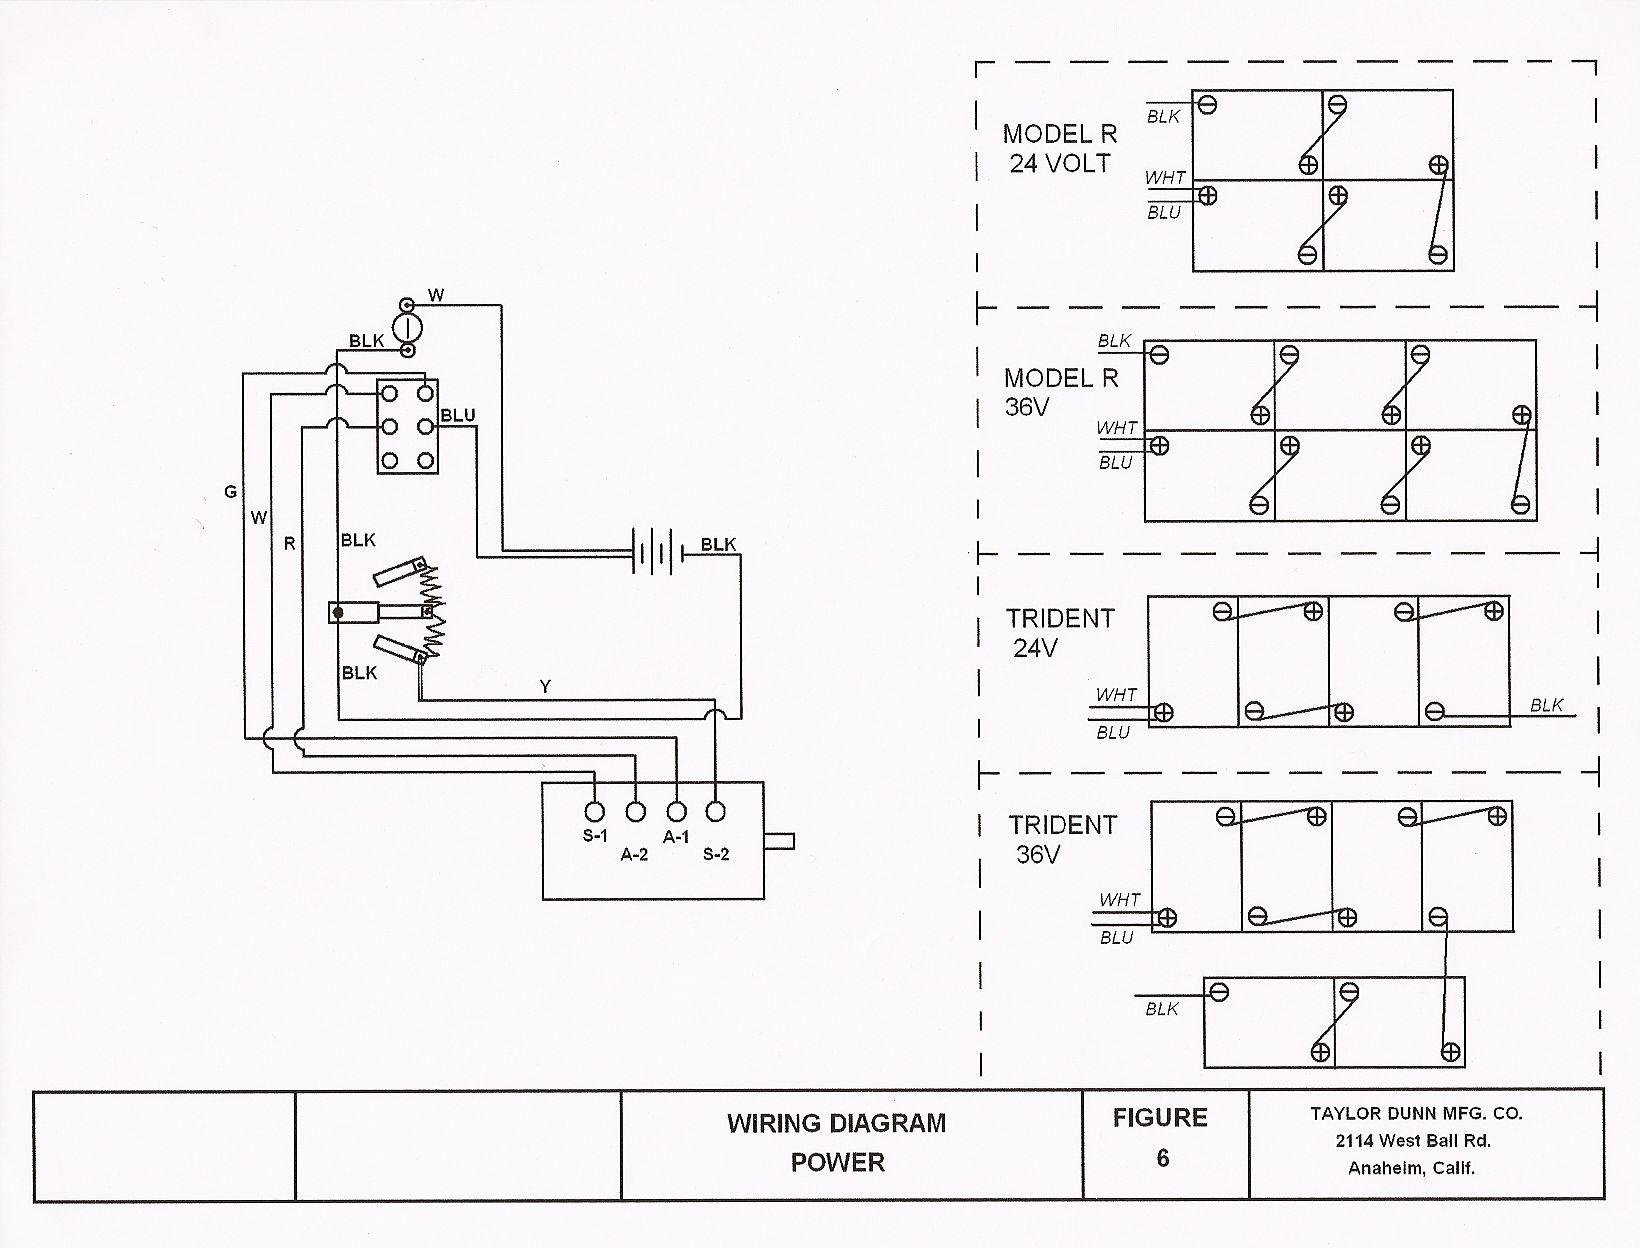 hight resolution of  trident02 taylor dunn wiring diagram wiring diagram and schematic design trident gas control panel wiring diagram